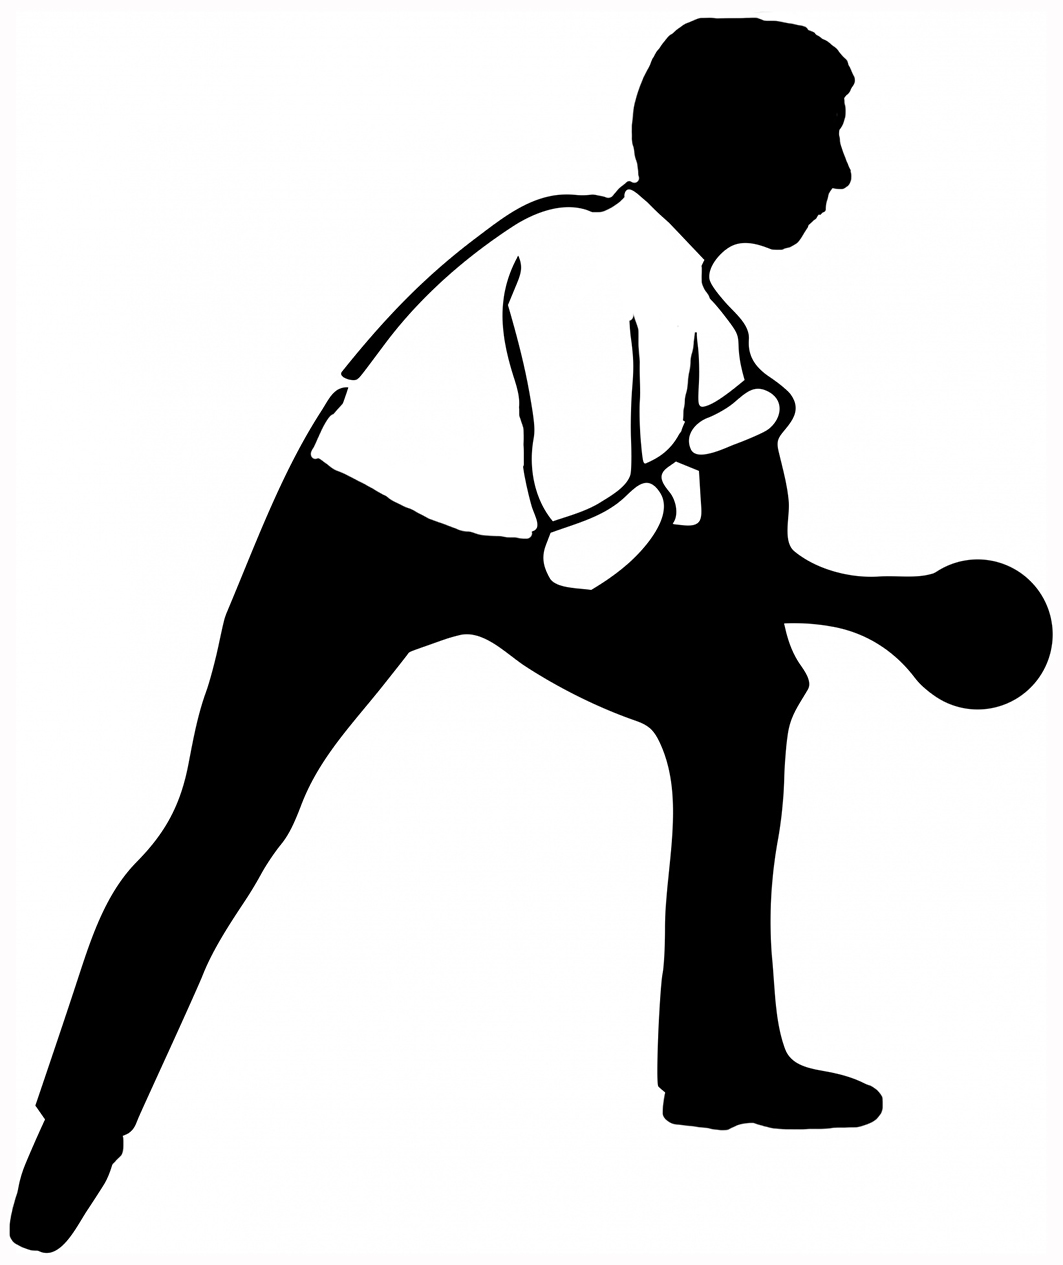 clipart picture bowling situation